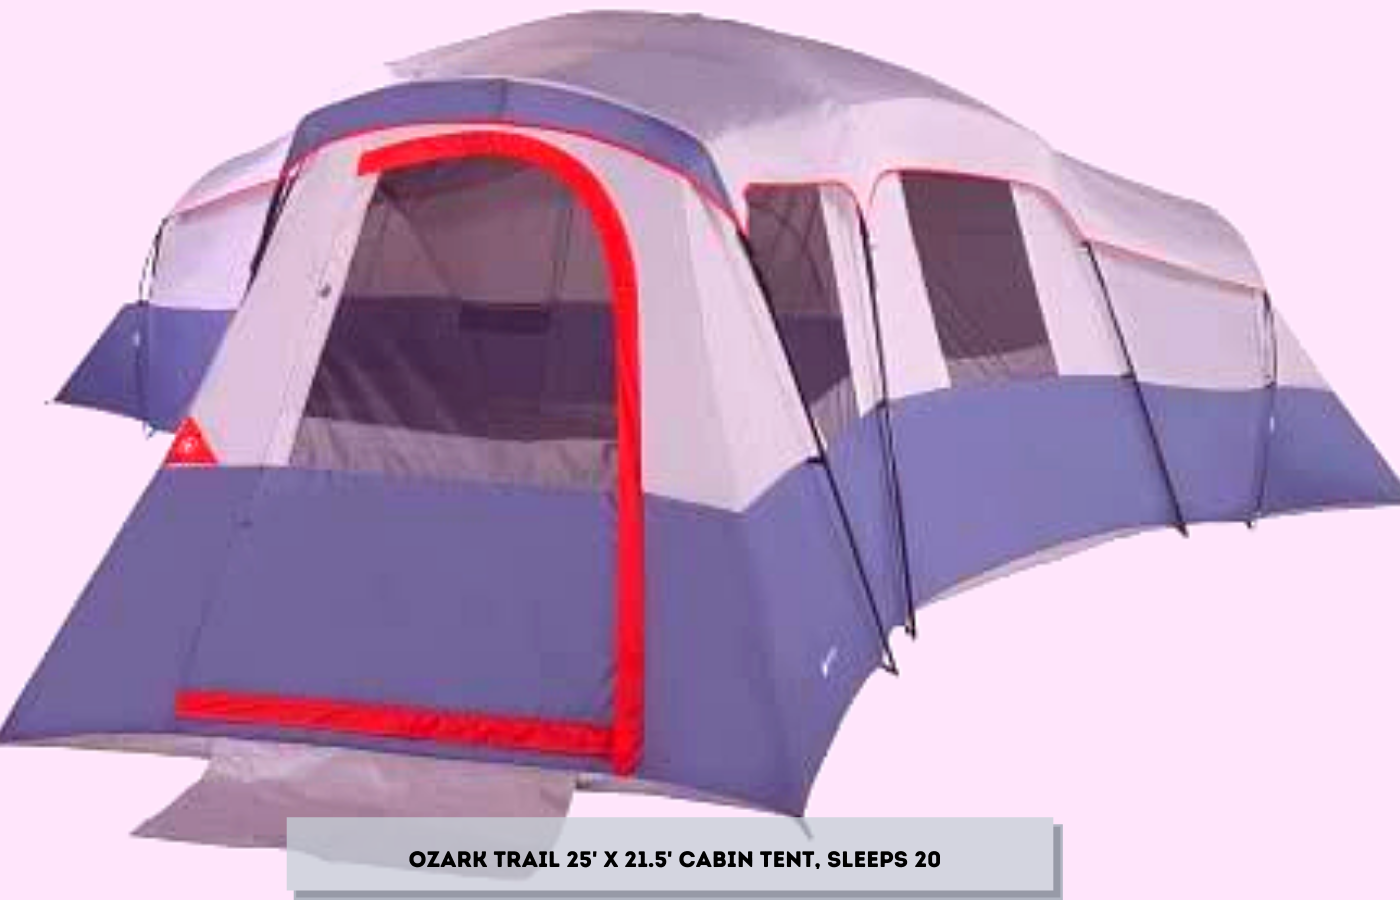 Ozark Trail 25' x 21.5' Cabin Tent, Sleeps 20